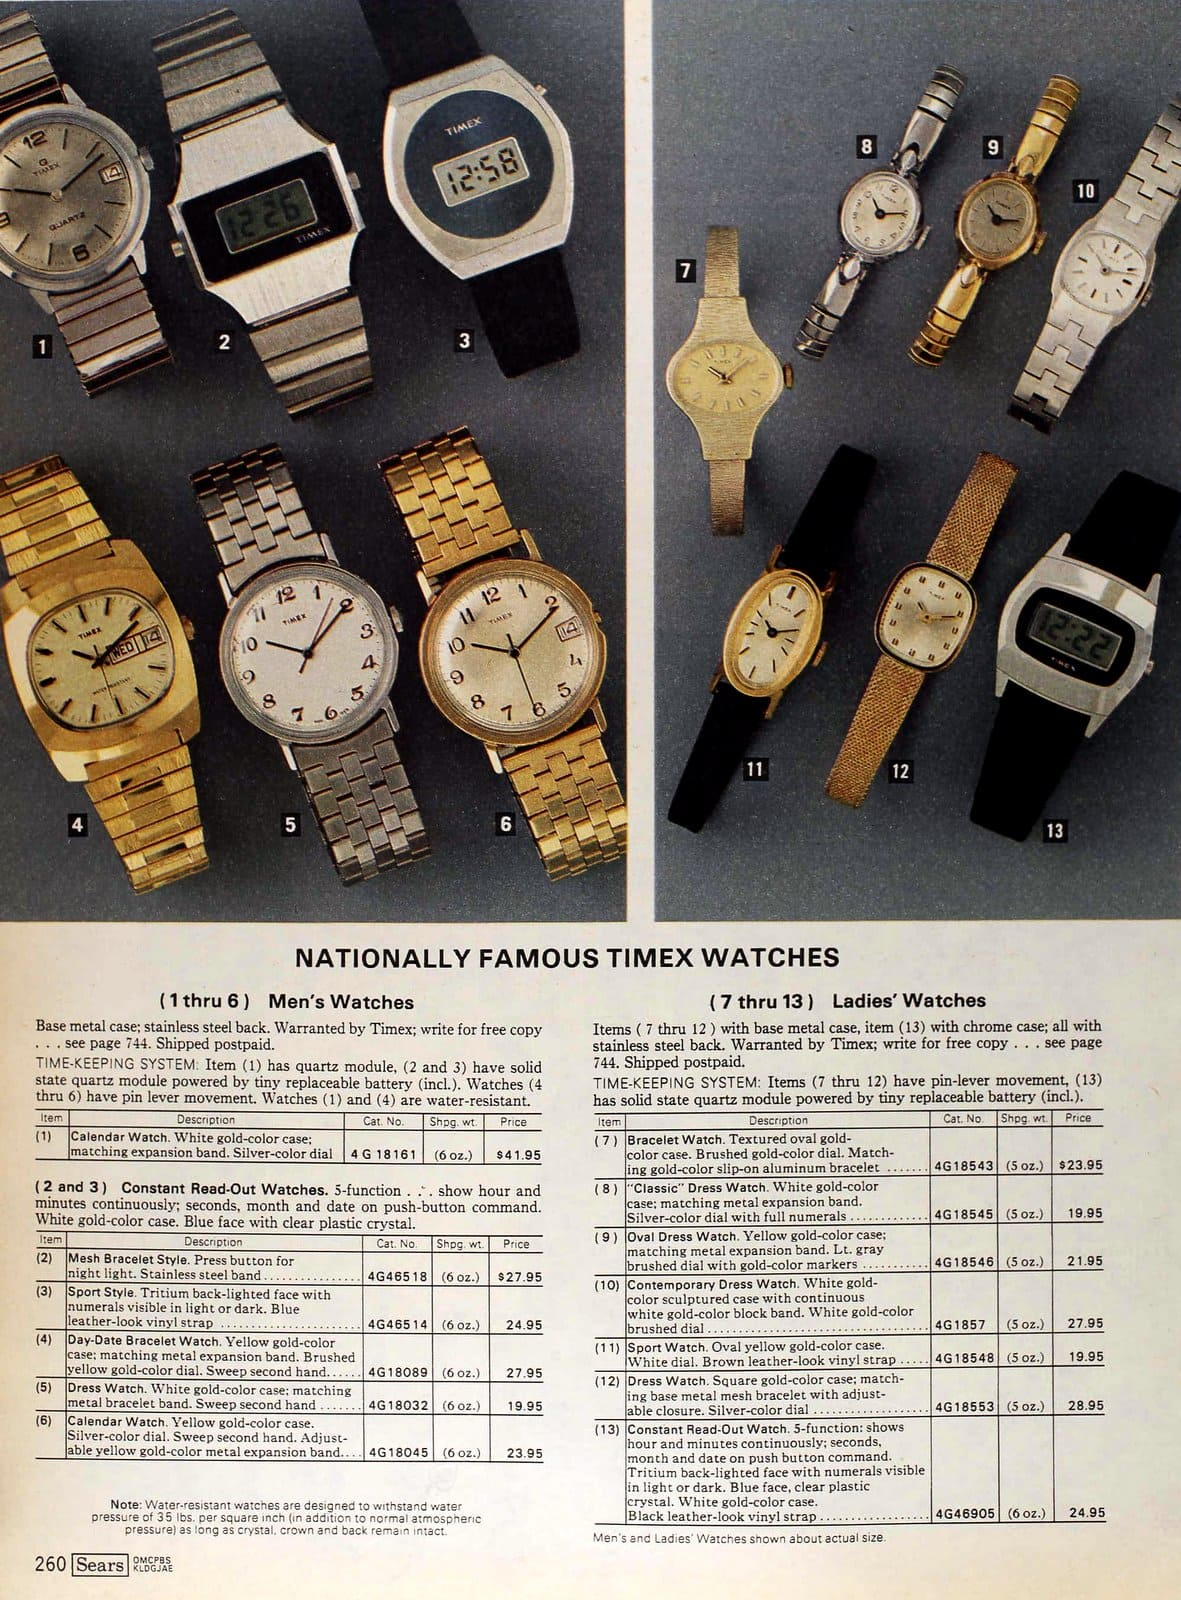 Timex watches from 1979